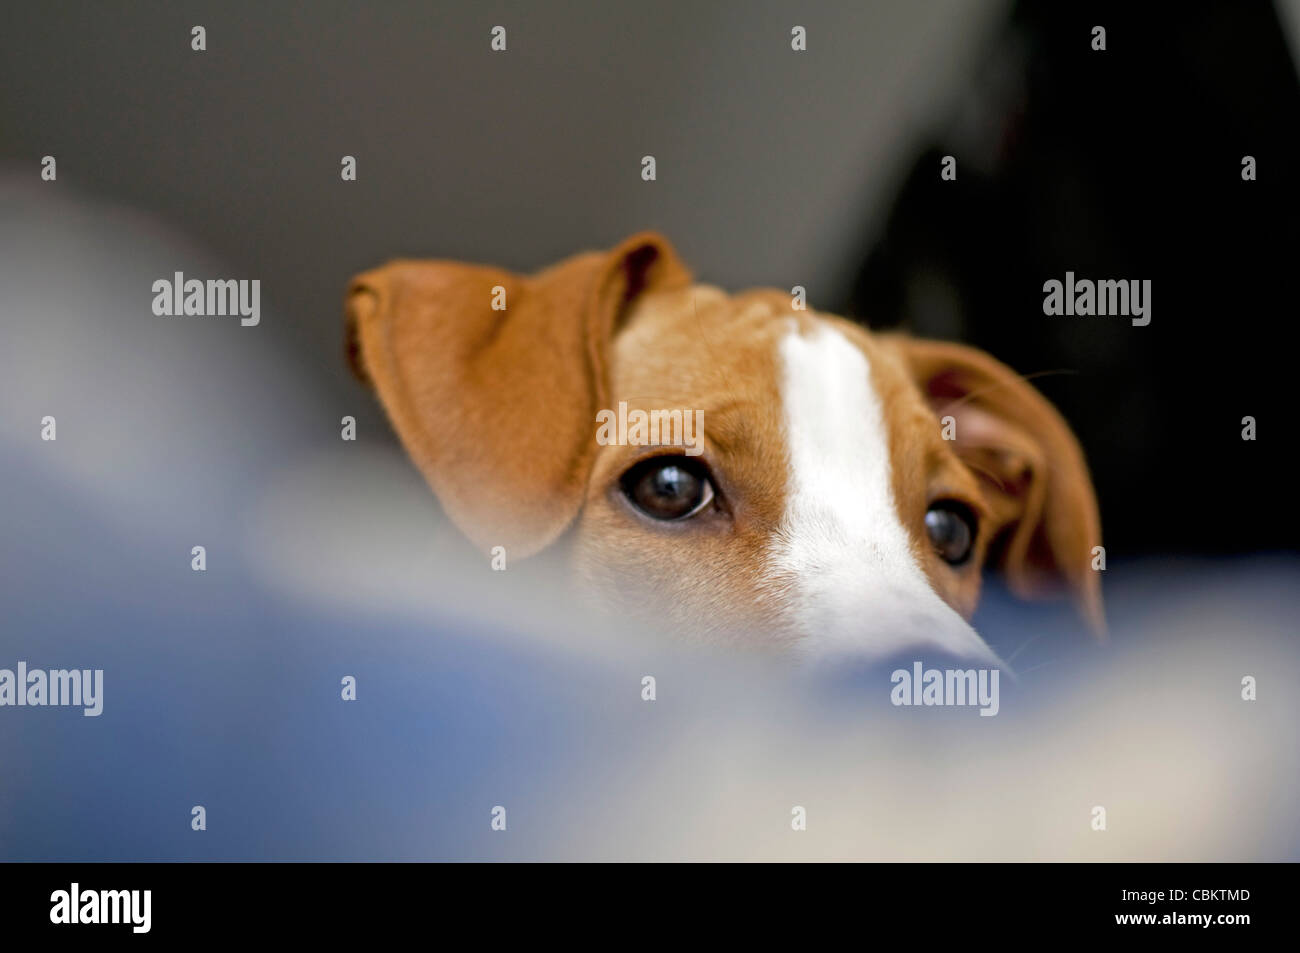 Young brown dog at home - Stock Image